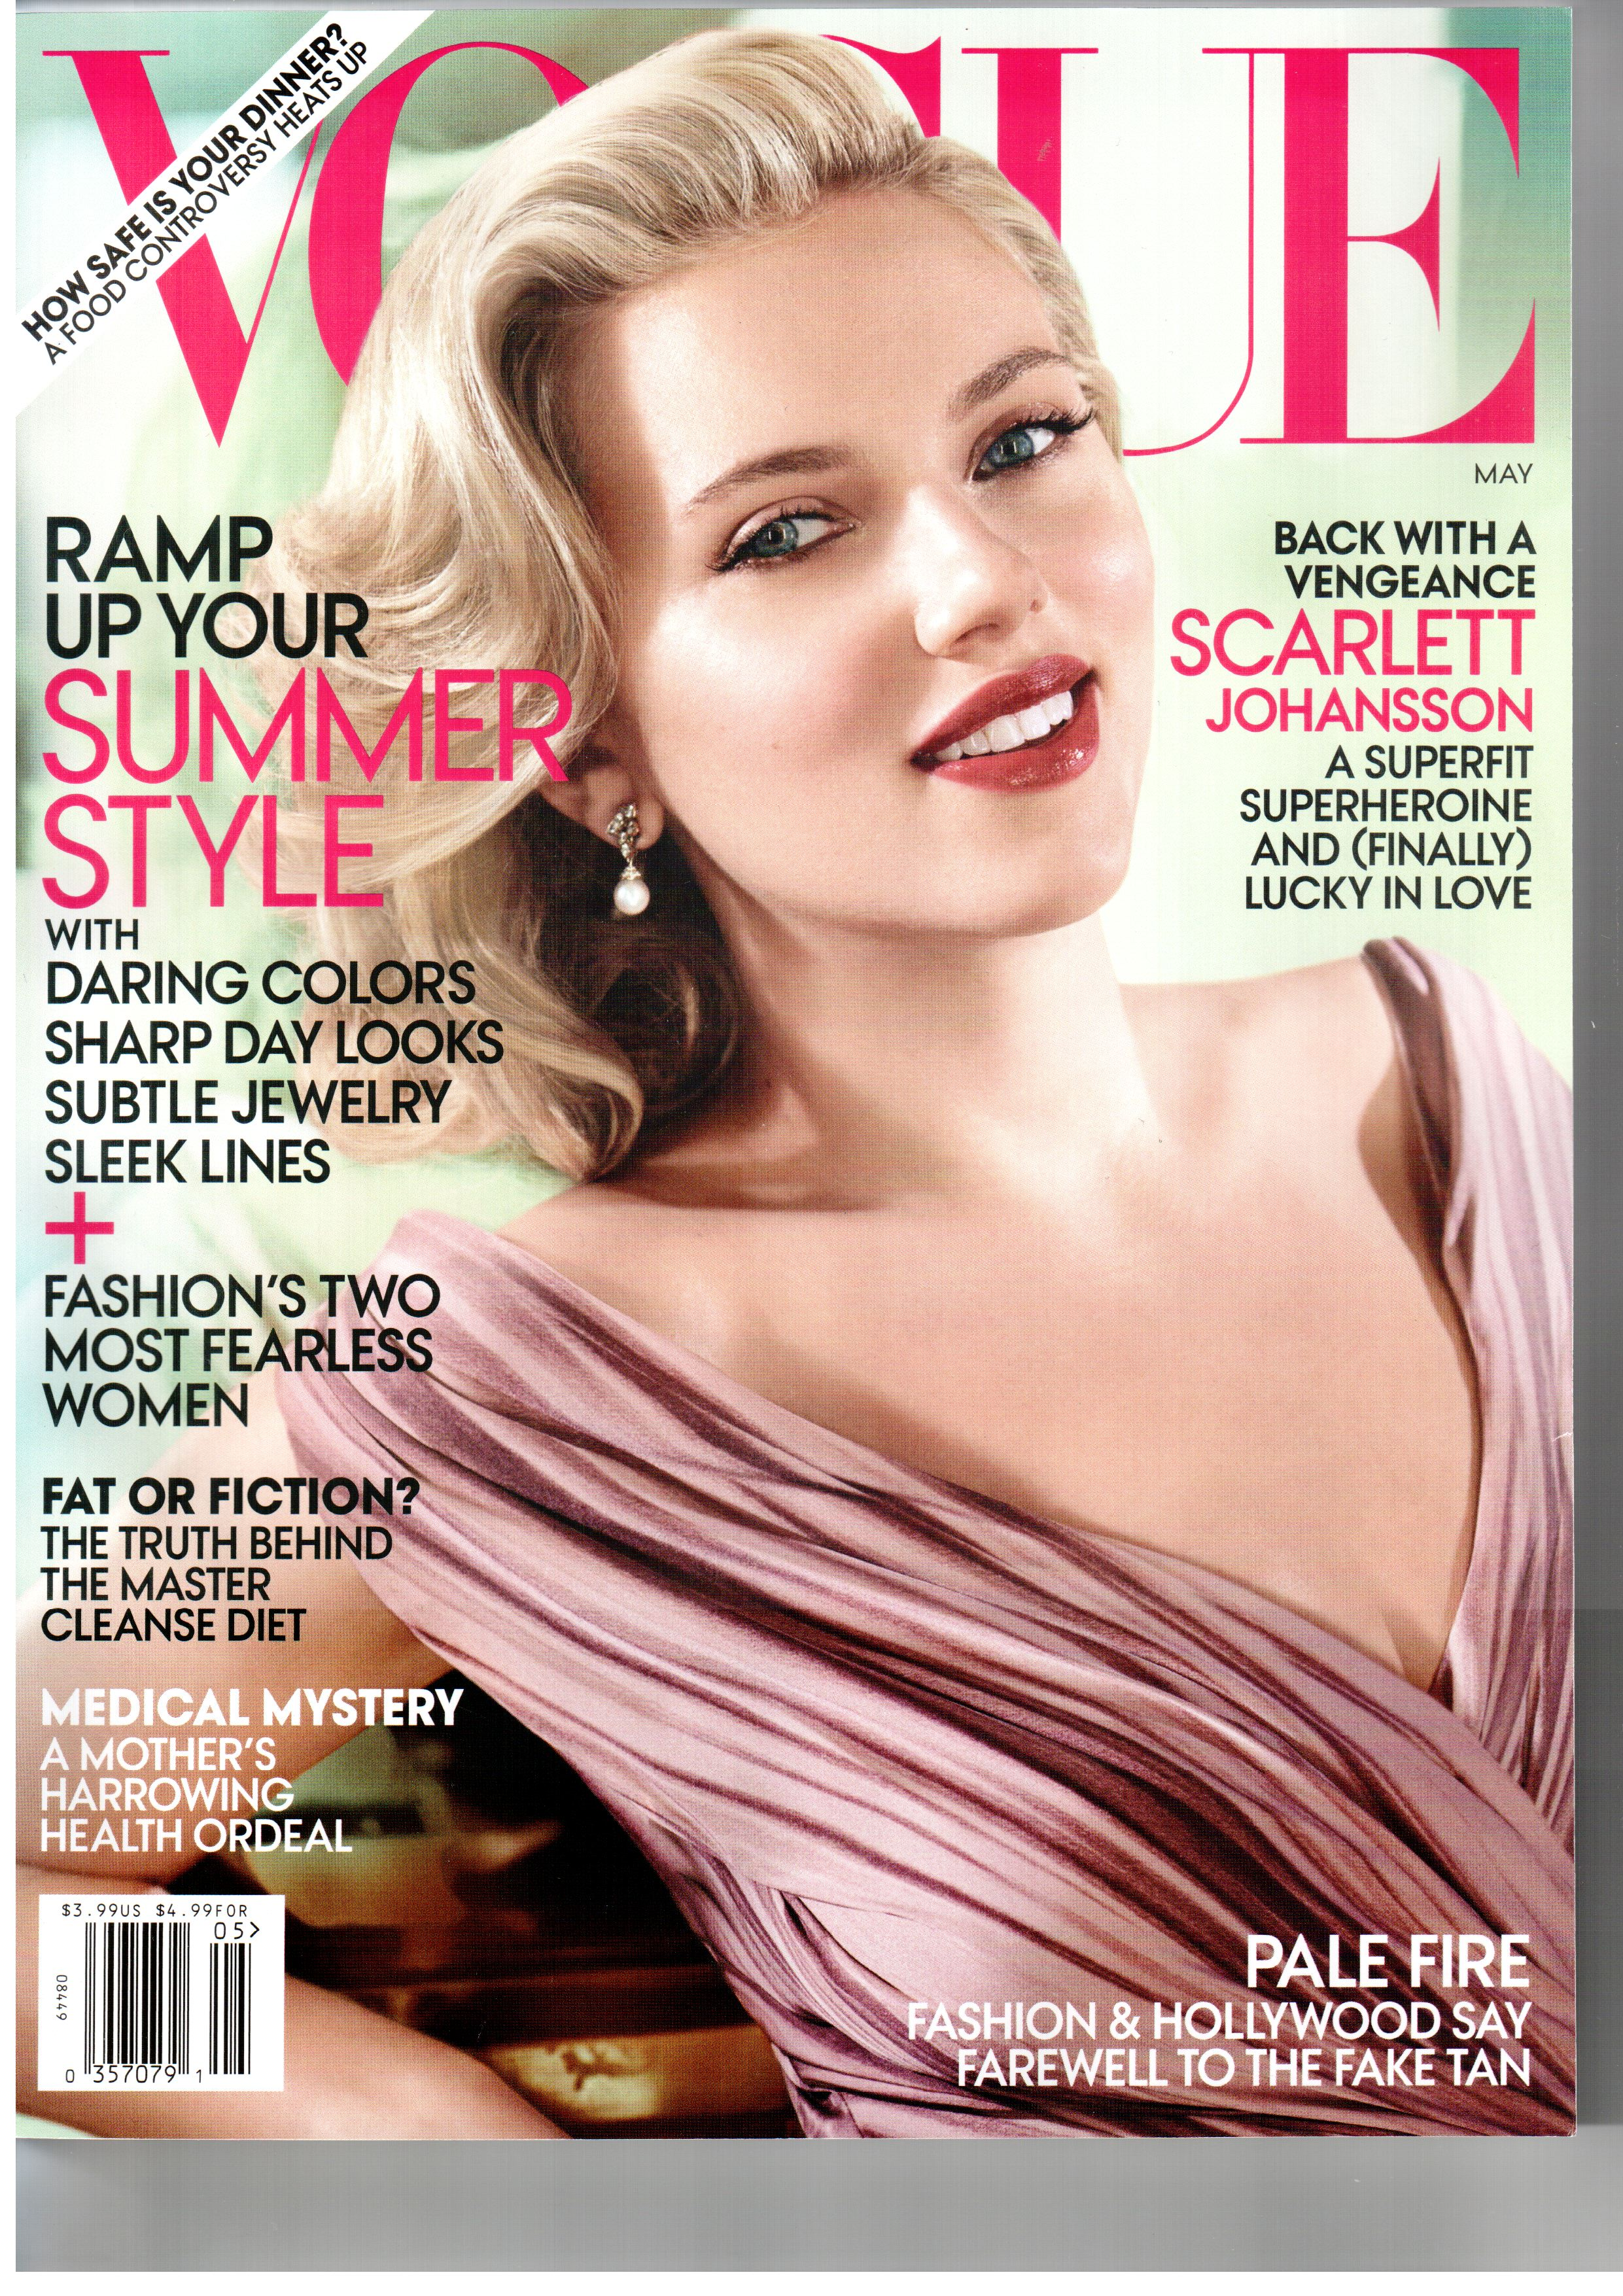 2012-May-Vogue-cover.jpg